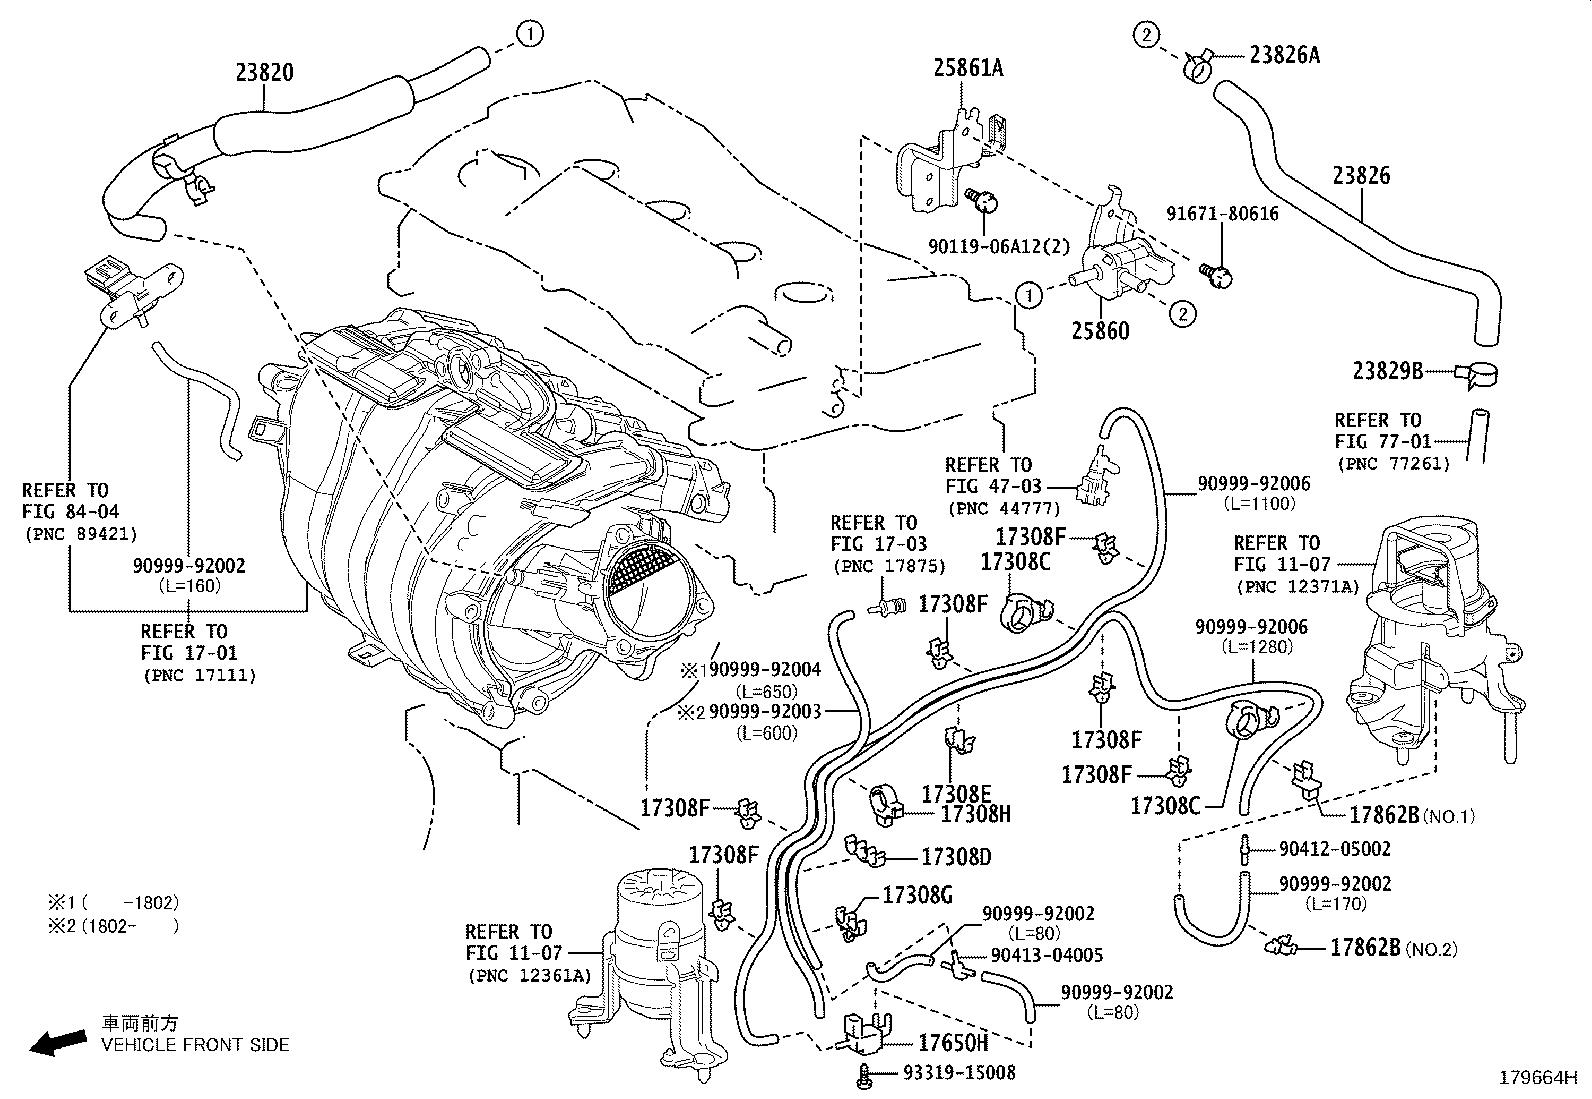 Toyota Camry Hose, fuel vapor feed, no. 1. Engine